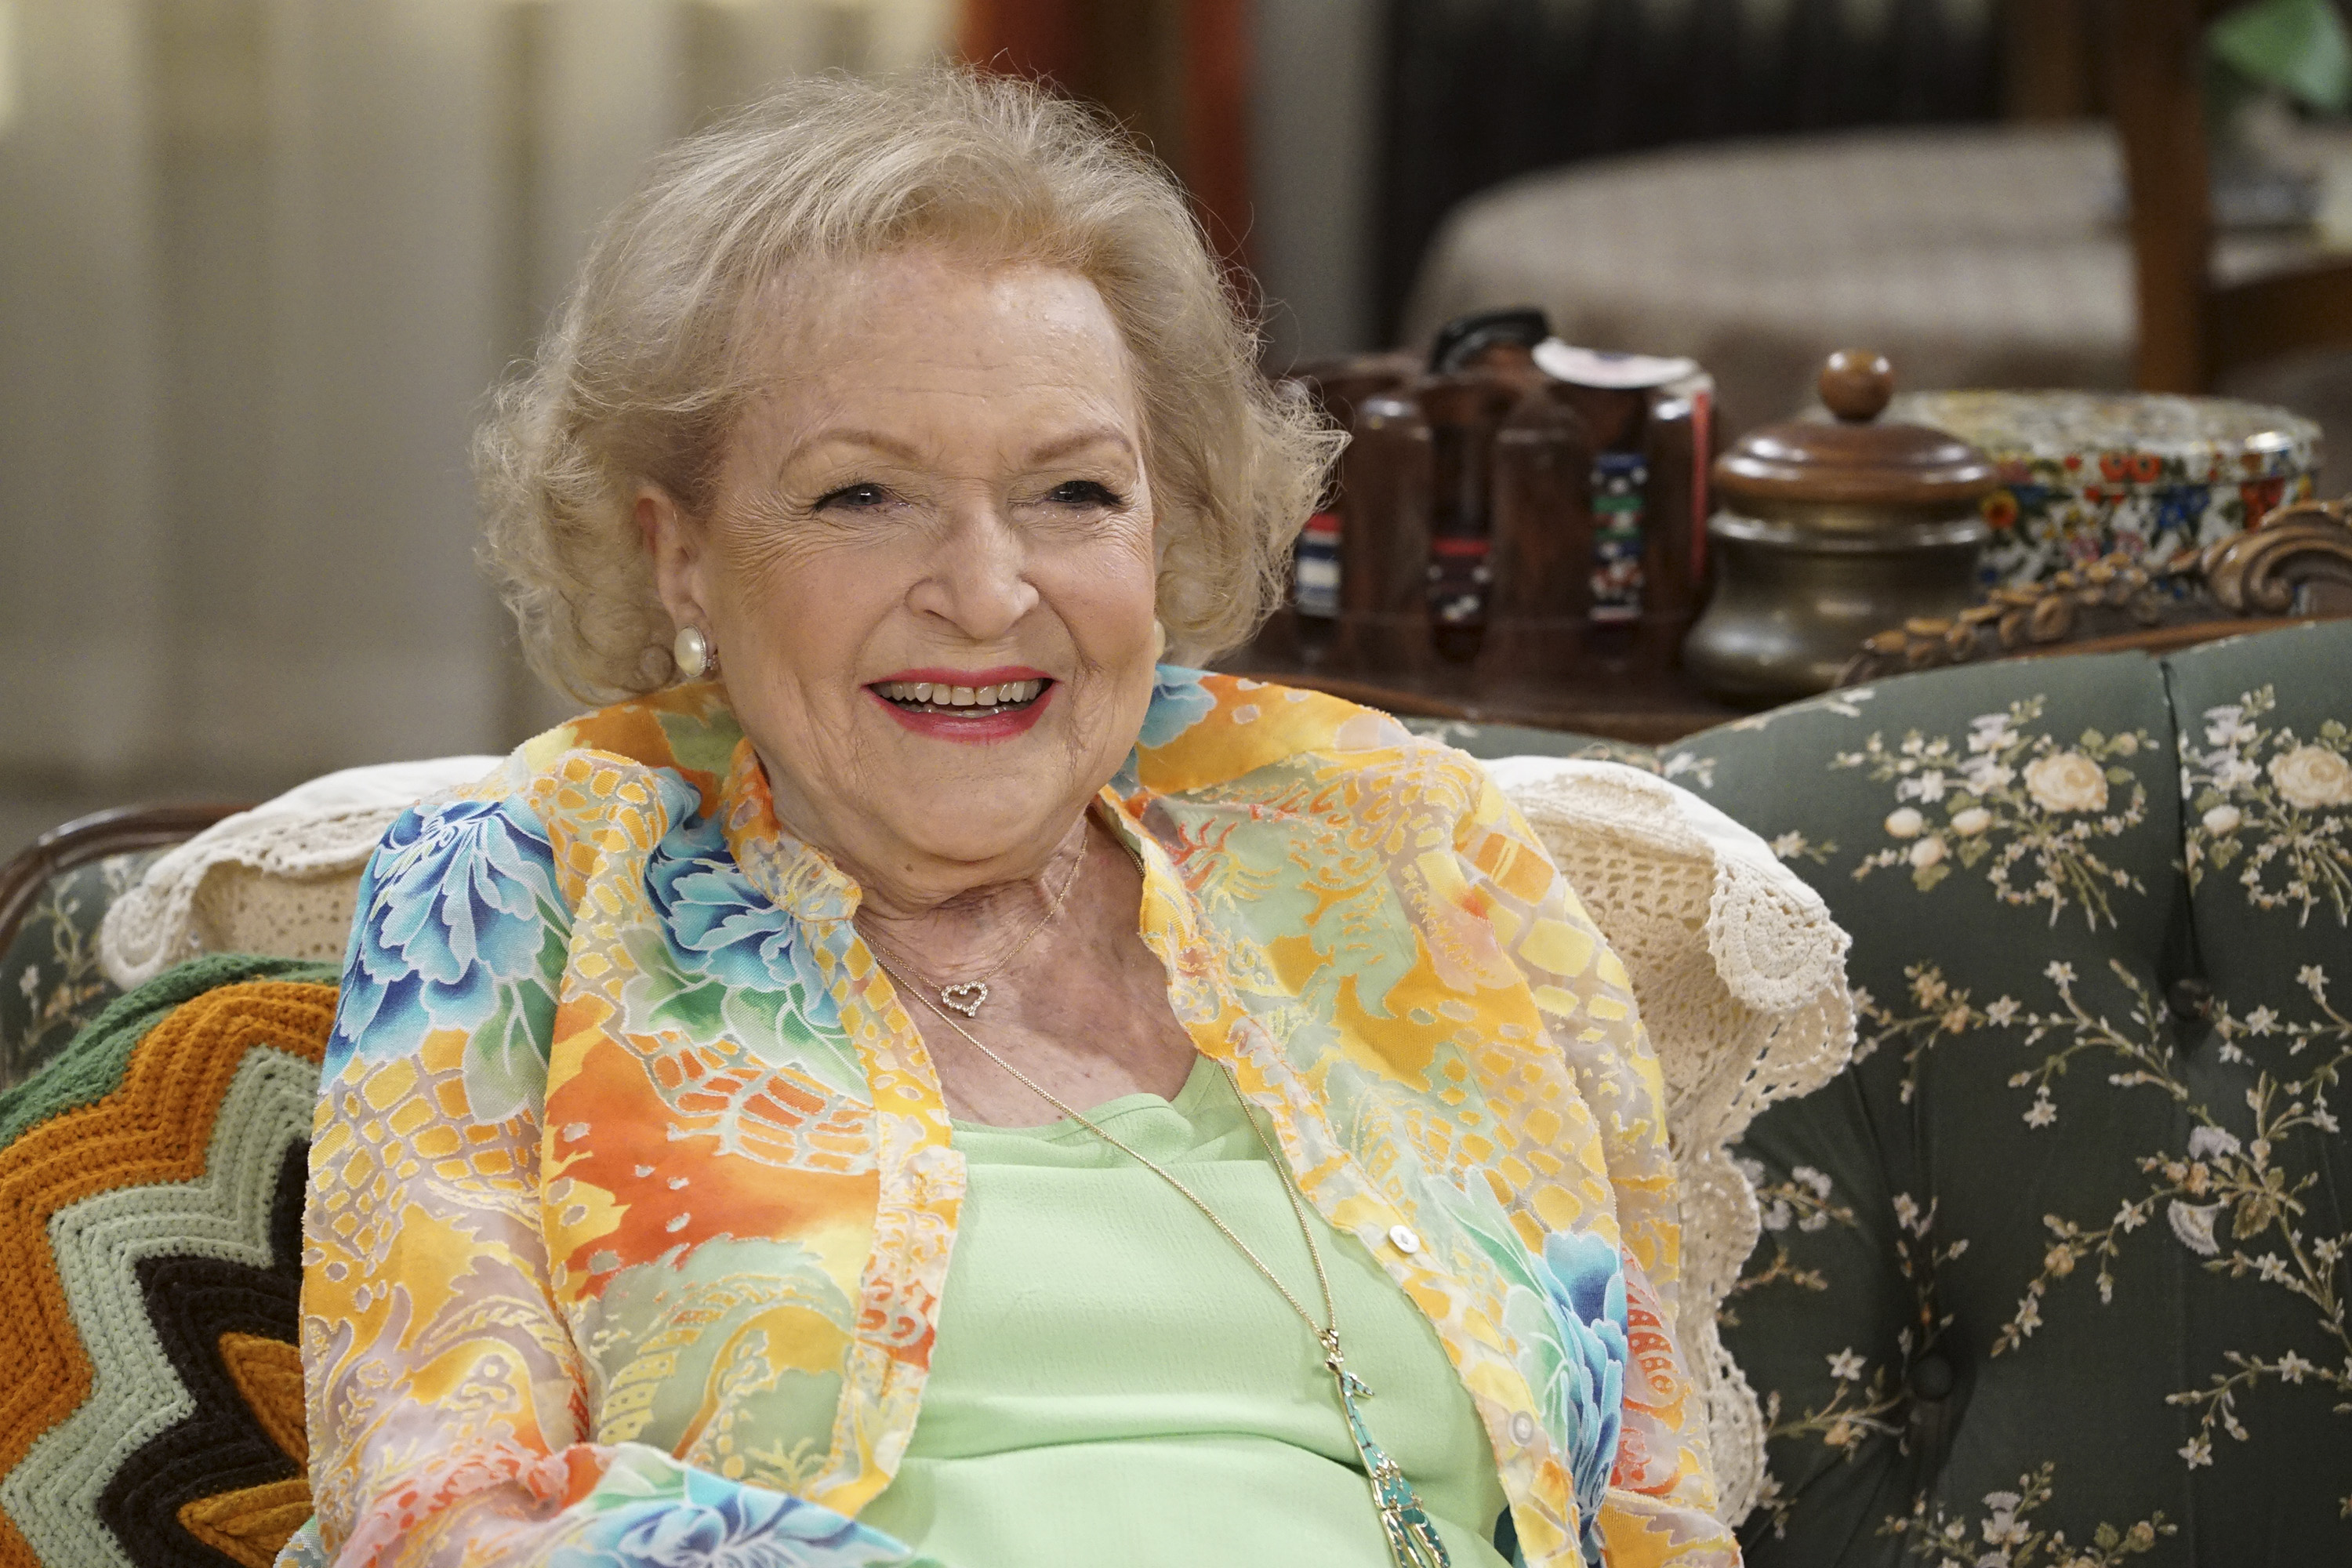 Betty White Looks Great As She Steps Out Ahead Of 97th Birthday